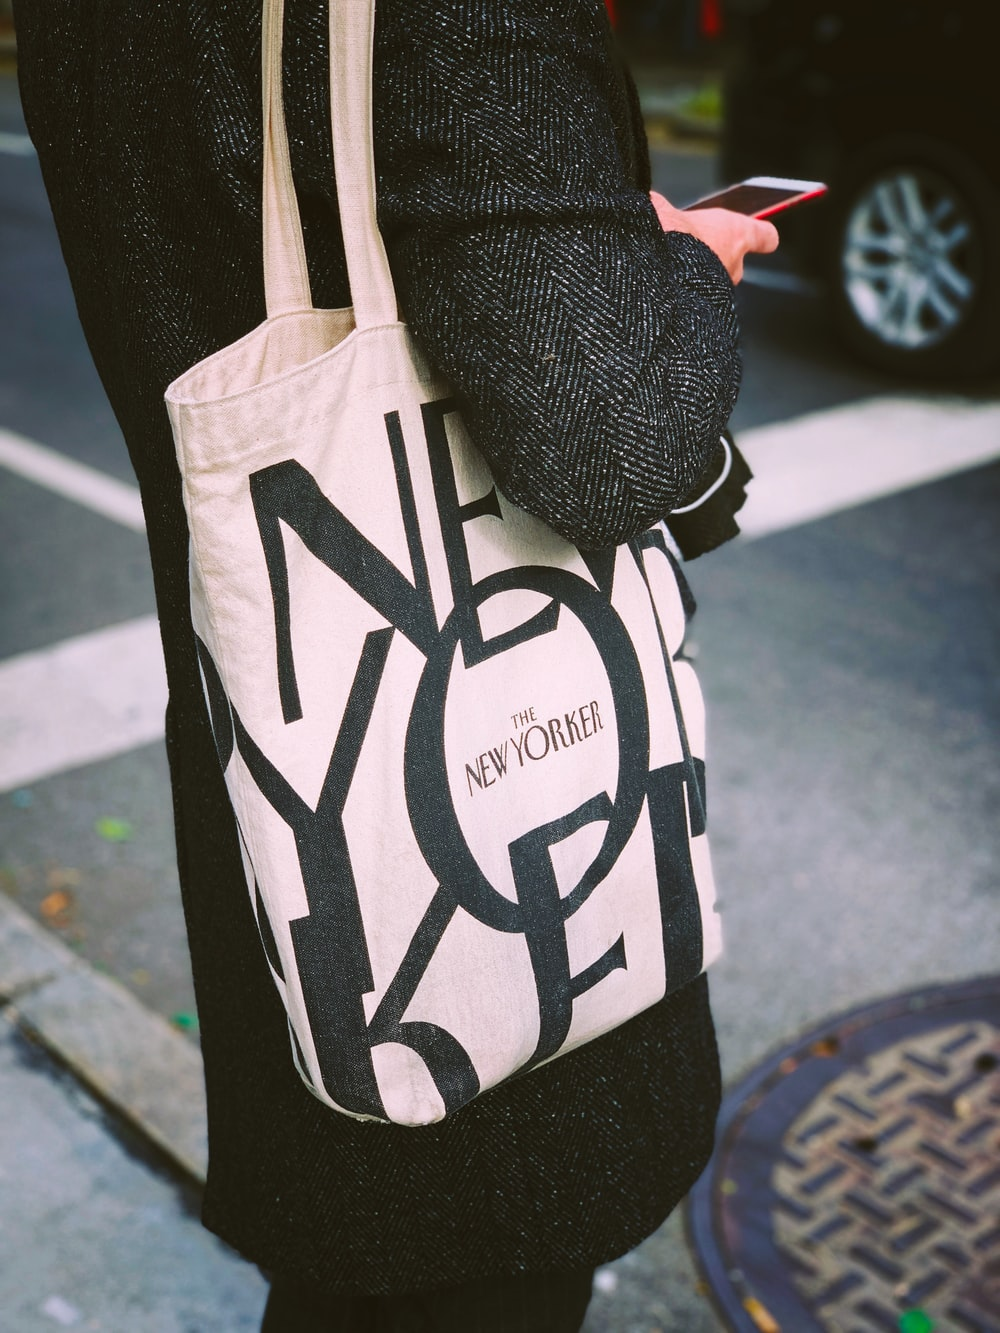 person carrying white and black tote bag